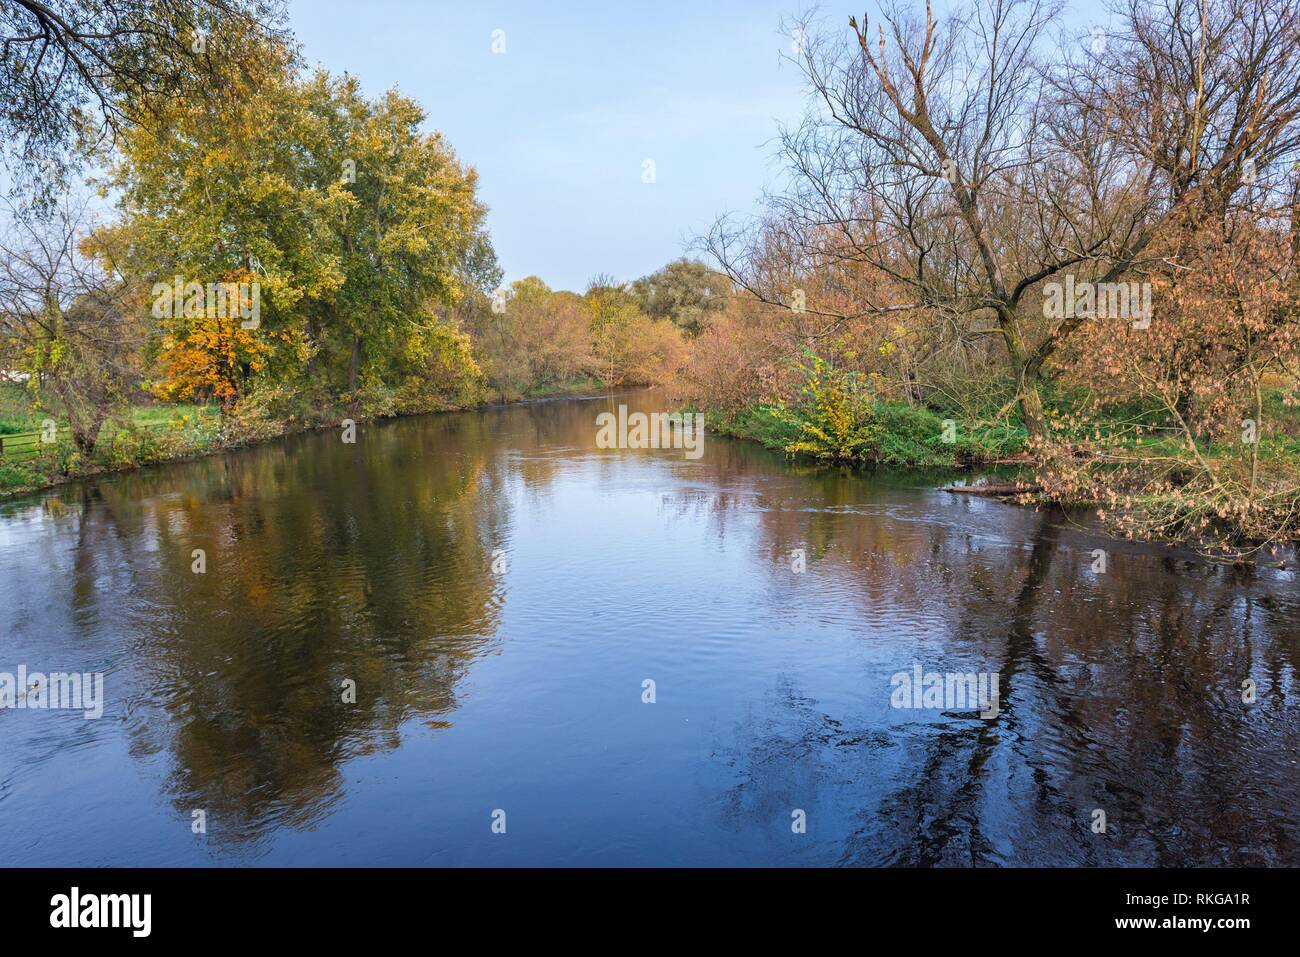 Bzura River in Witkowice village, Sochaczew County in Masovian Voivodeship of Poland. - Stock Image